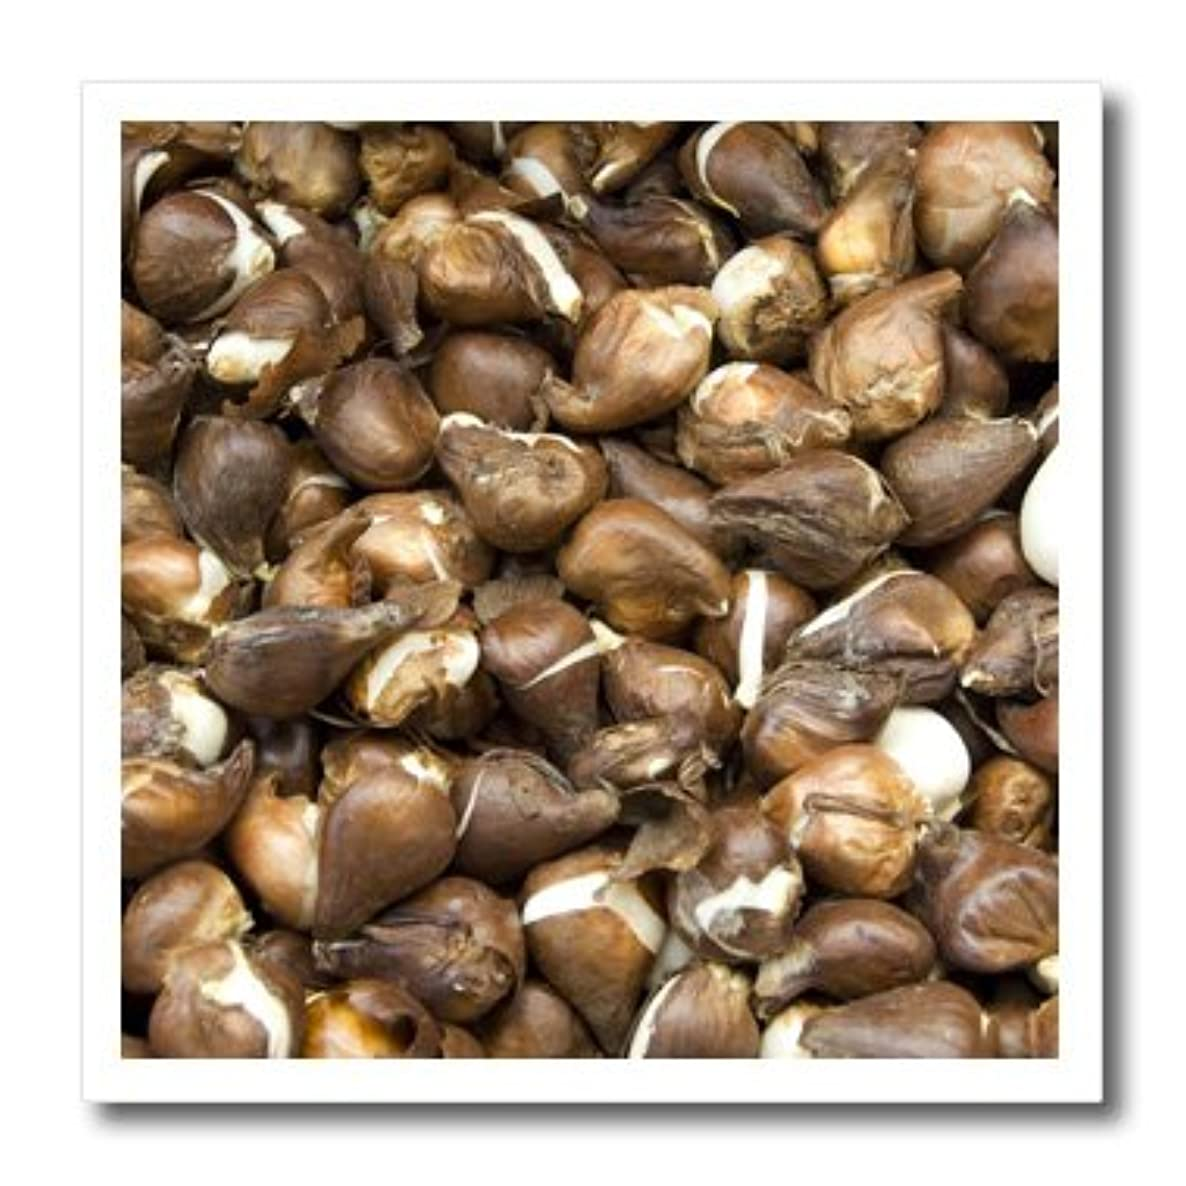 3dRose ht_82274_1 Netherlands, Amsterdam, Market Tulip Bulbs-Cindy Miller Hopkins-Iron on Heat Transfer for Material, 8 by 8-Inch, White